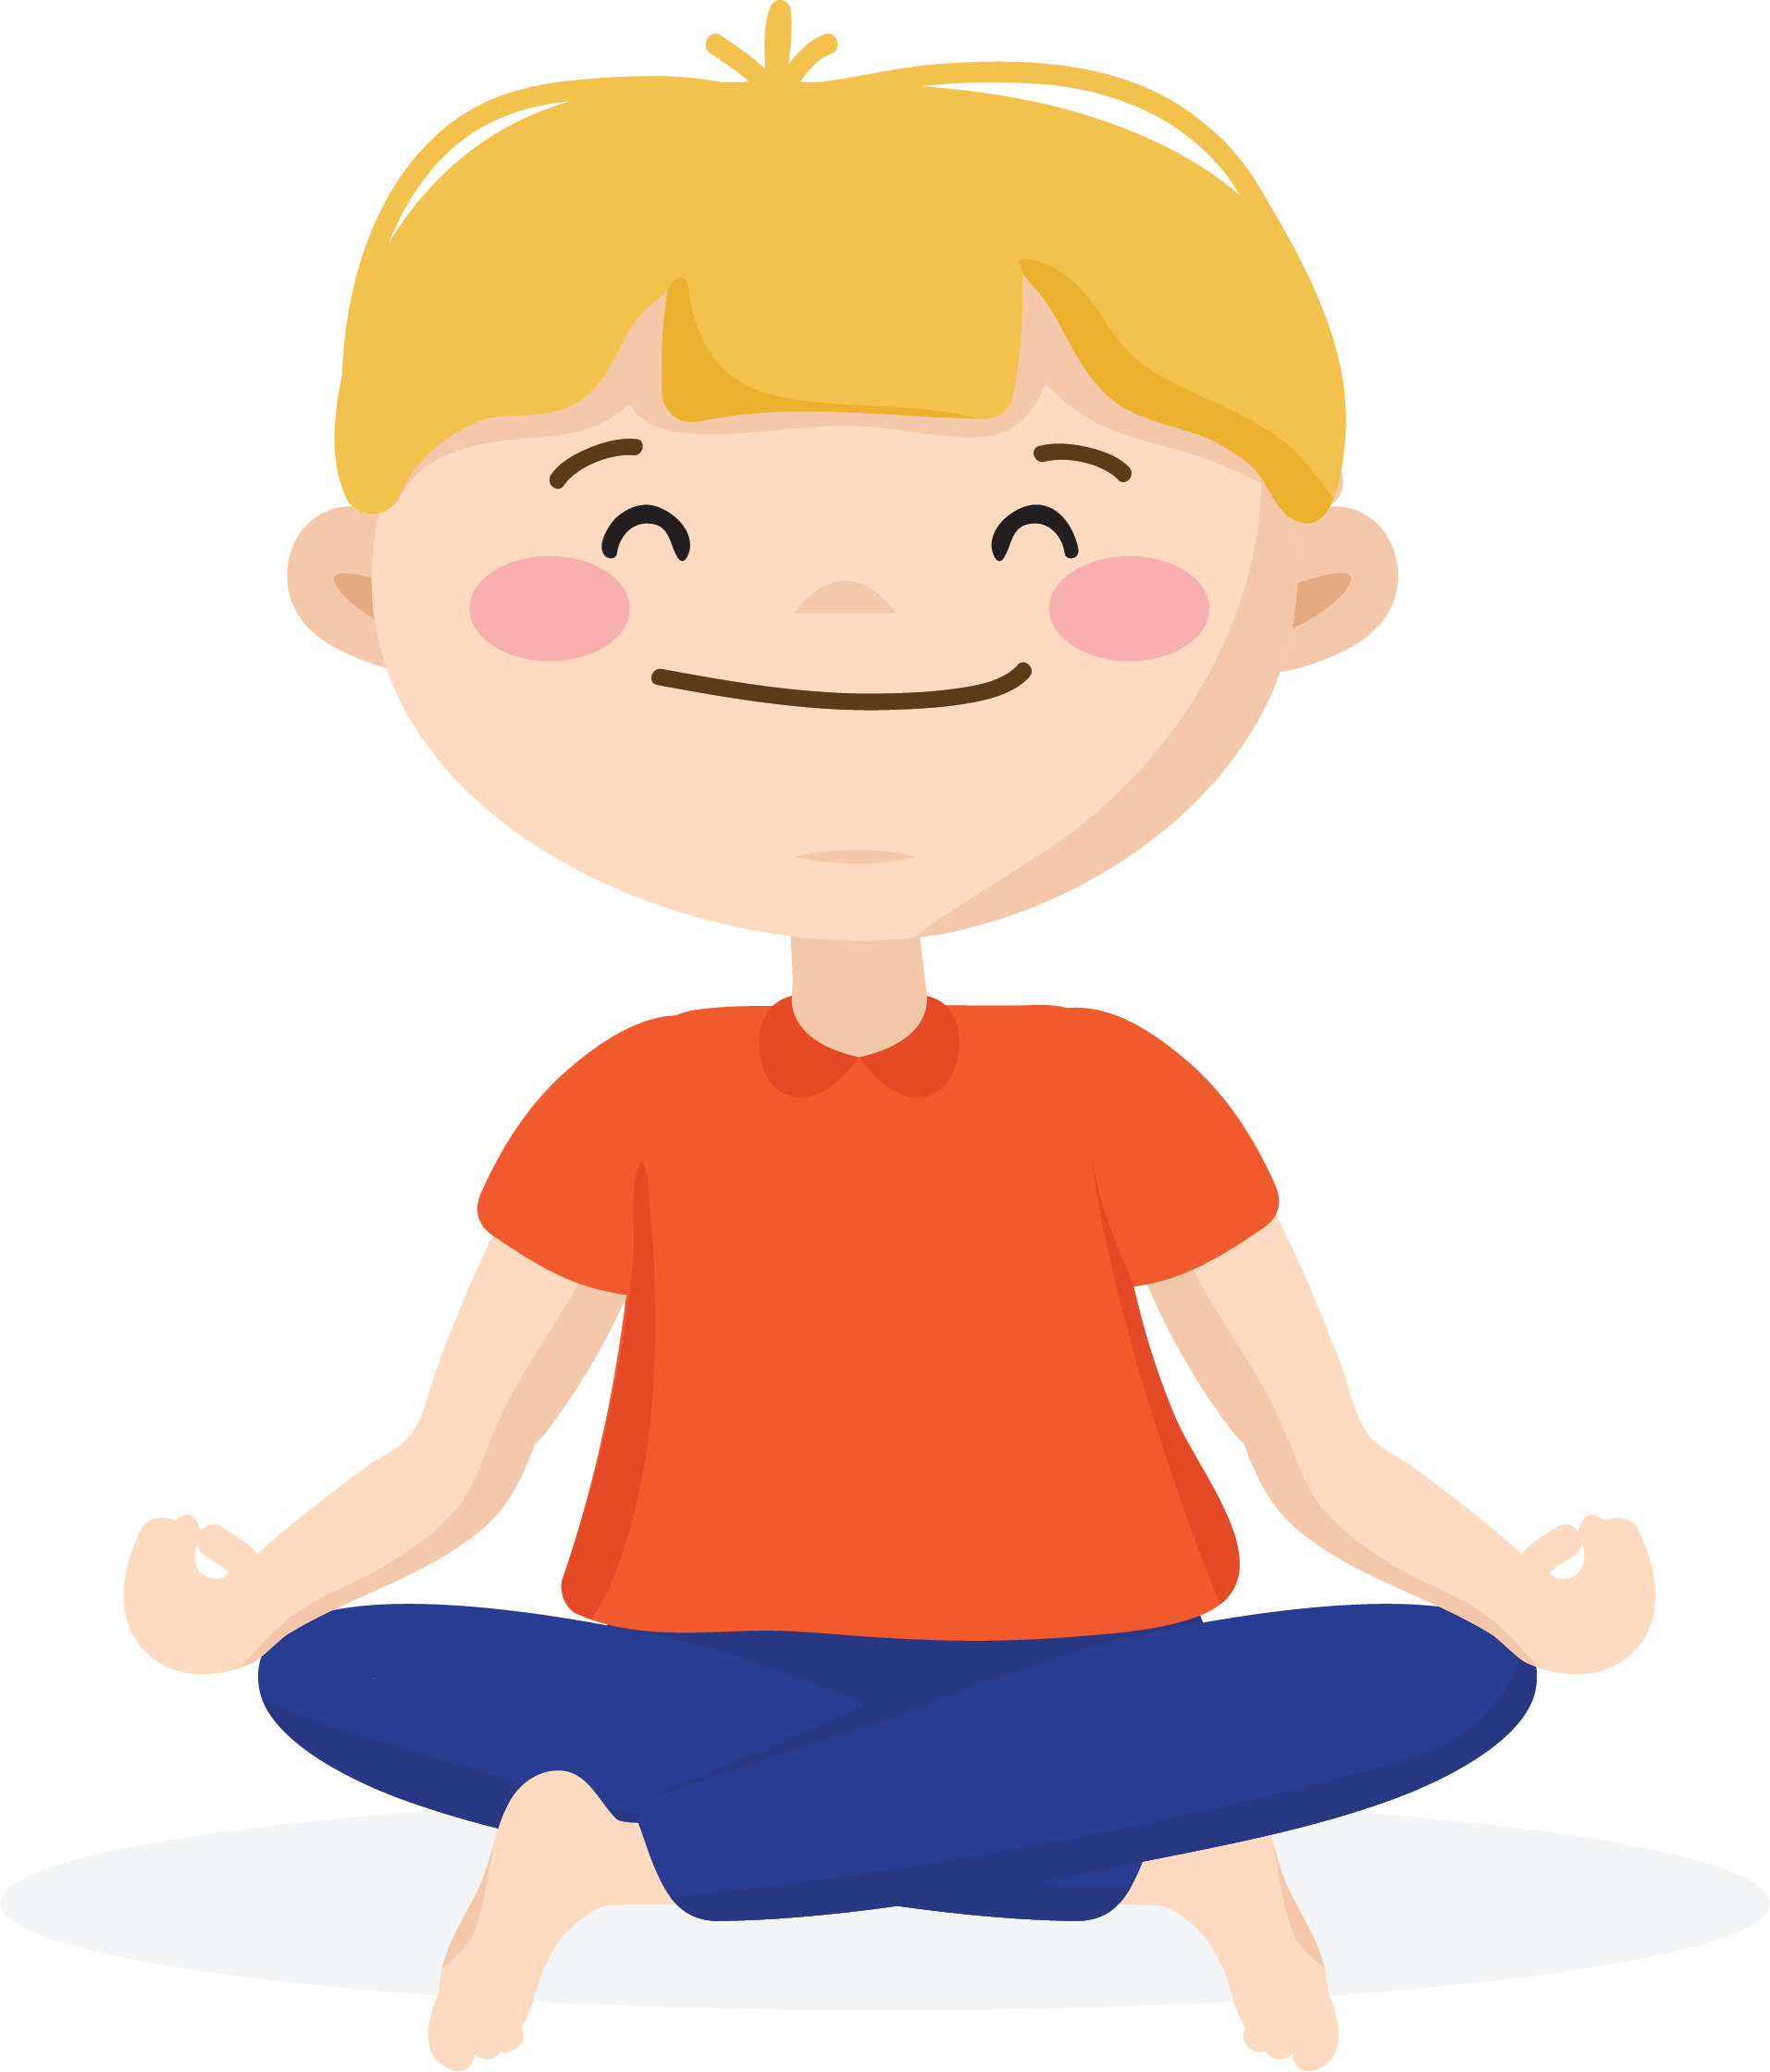 Breathing clipart kid, Breathing kid Transparent FREE for.